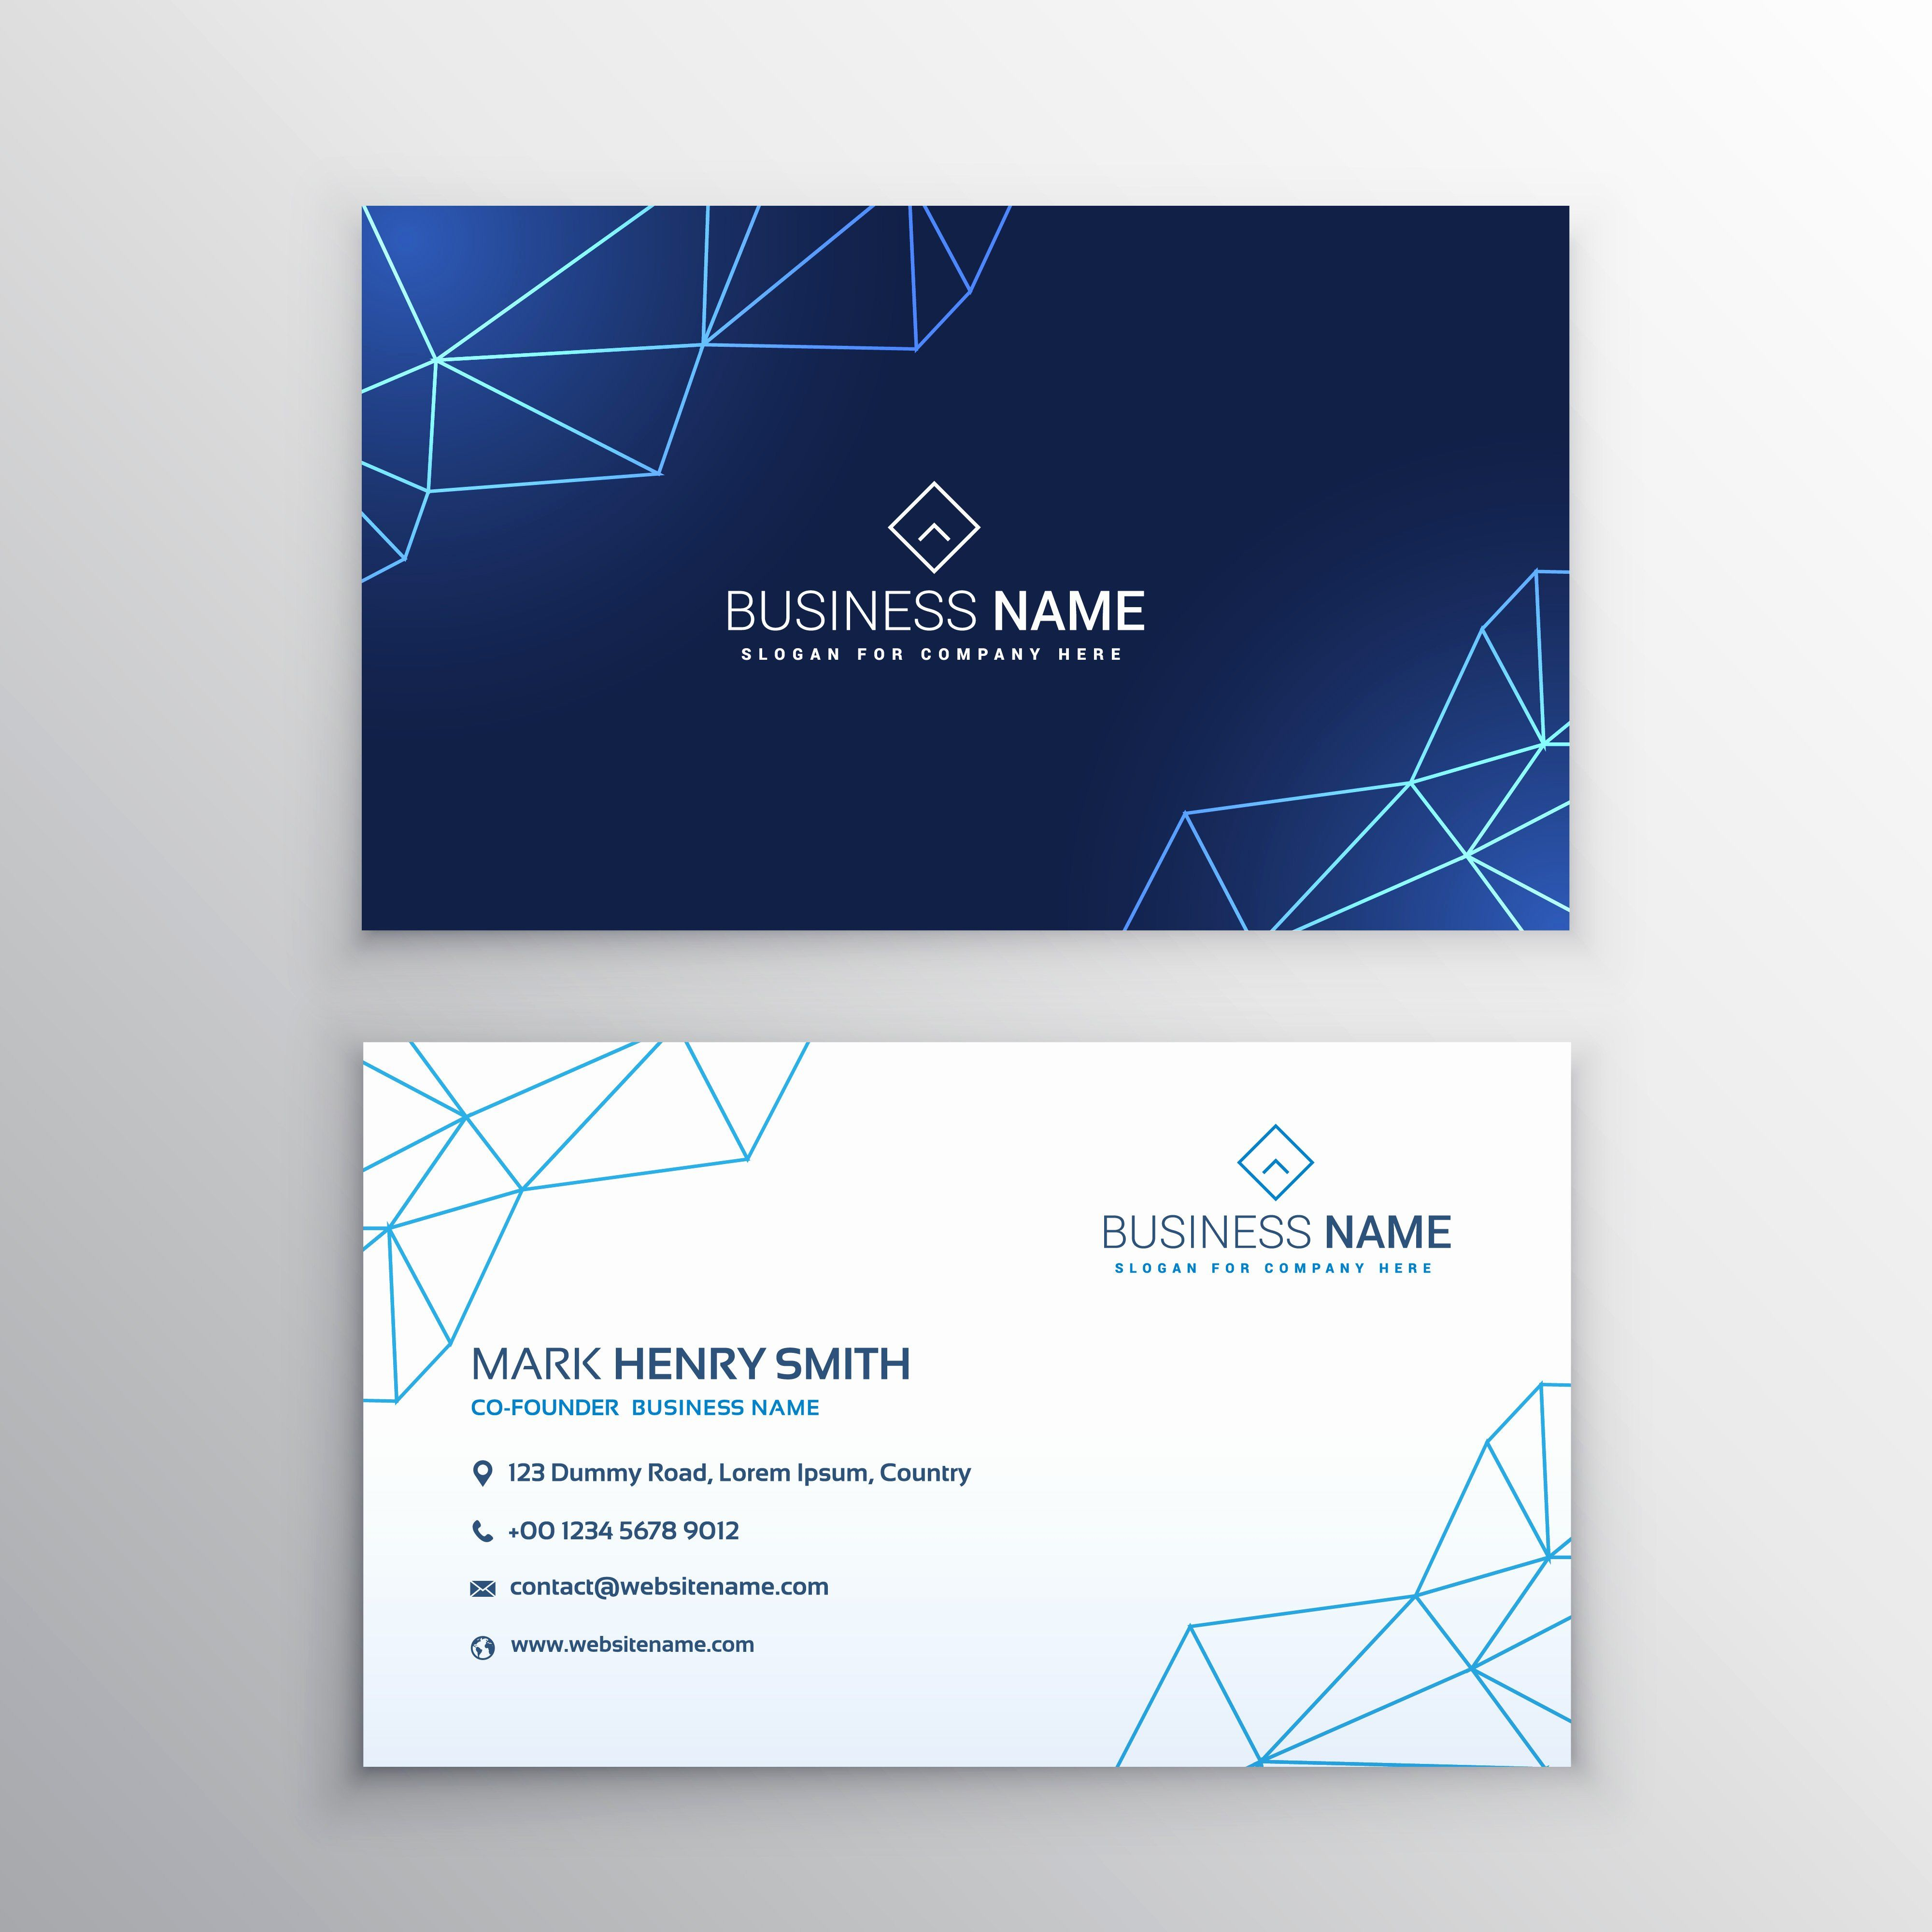 Technology Network Mobile Phone Business Card Template Design Psd Free Download Pikbest Business Card Template Design Business Card Template Printable Business Cards